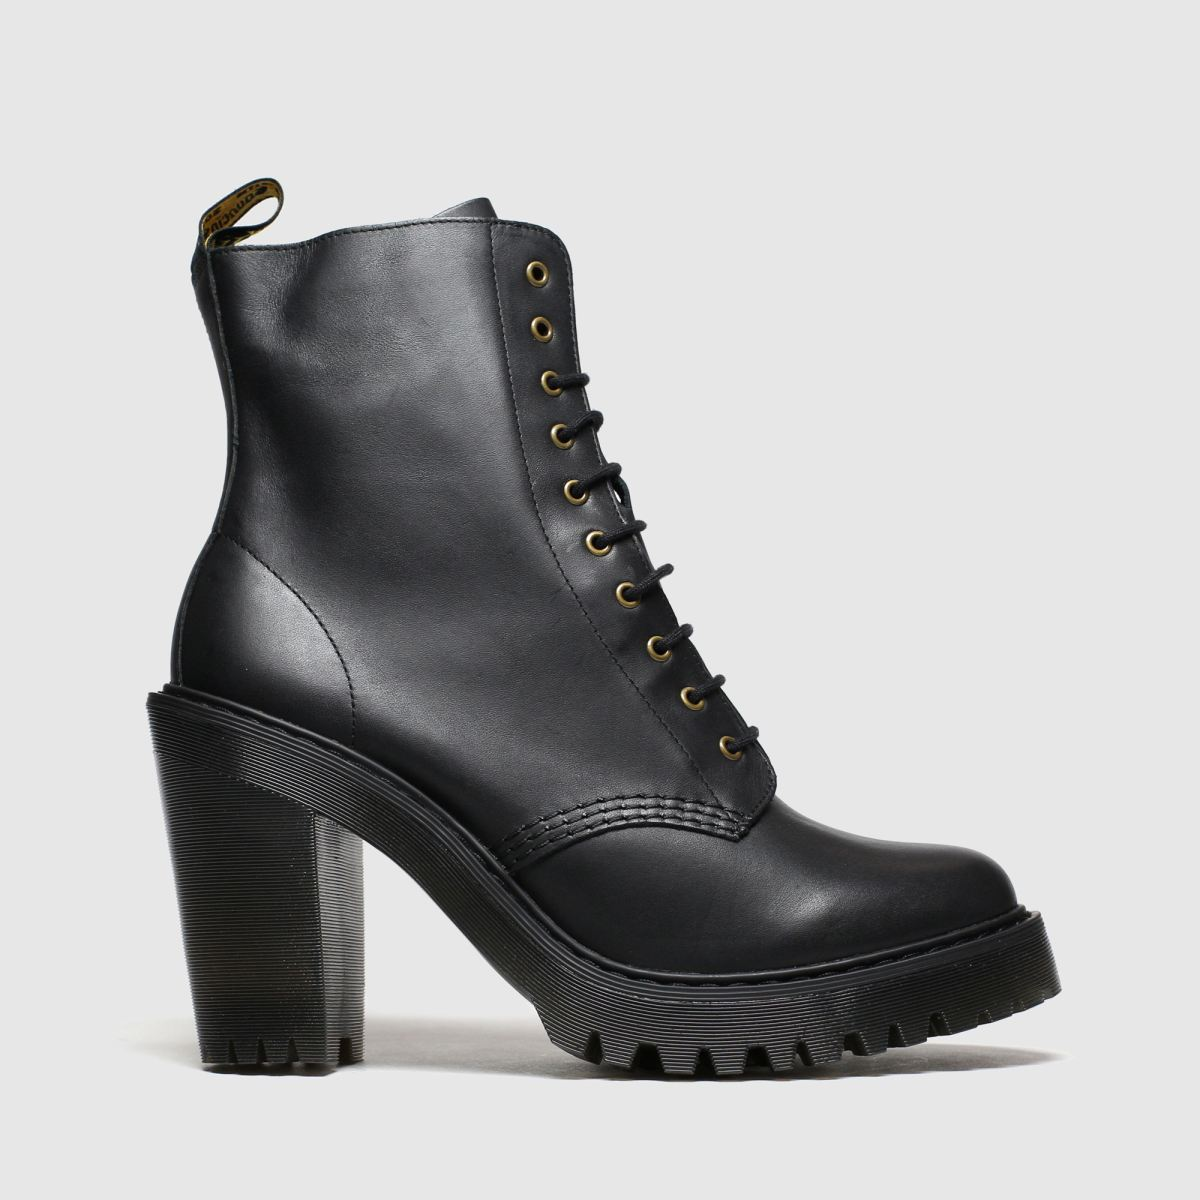 Dr Martens Black Kendra 10 Eye Boot Boots